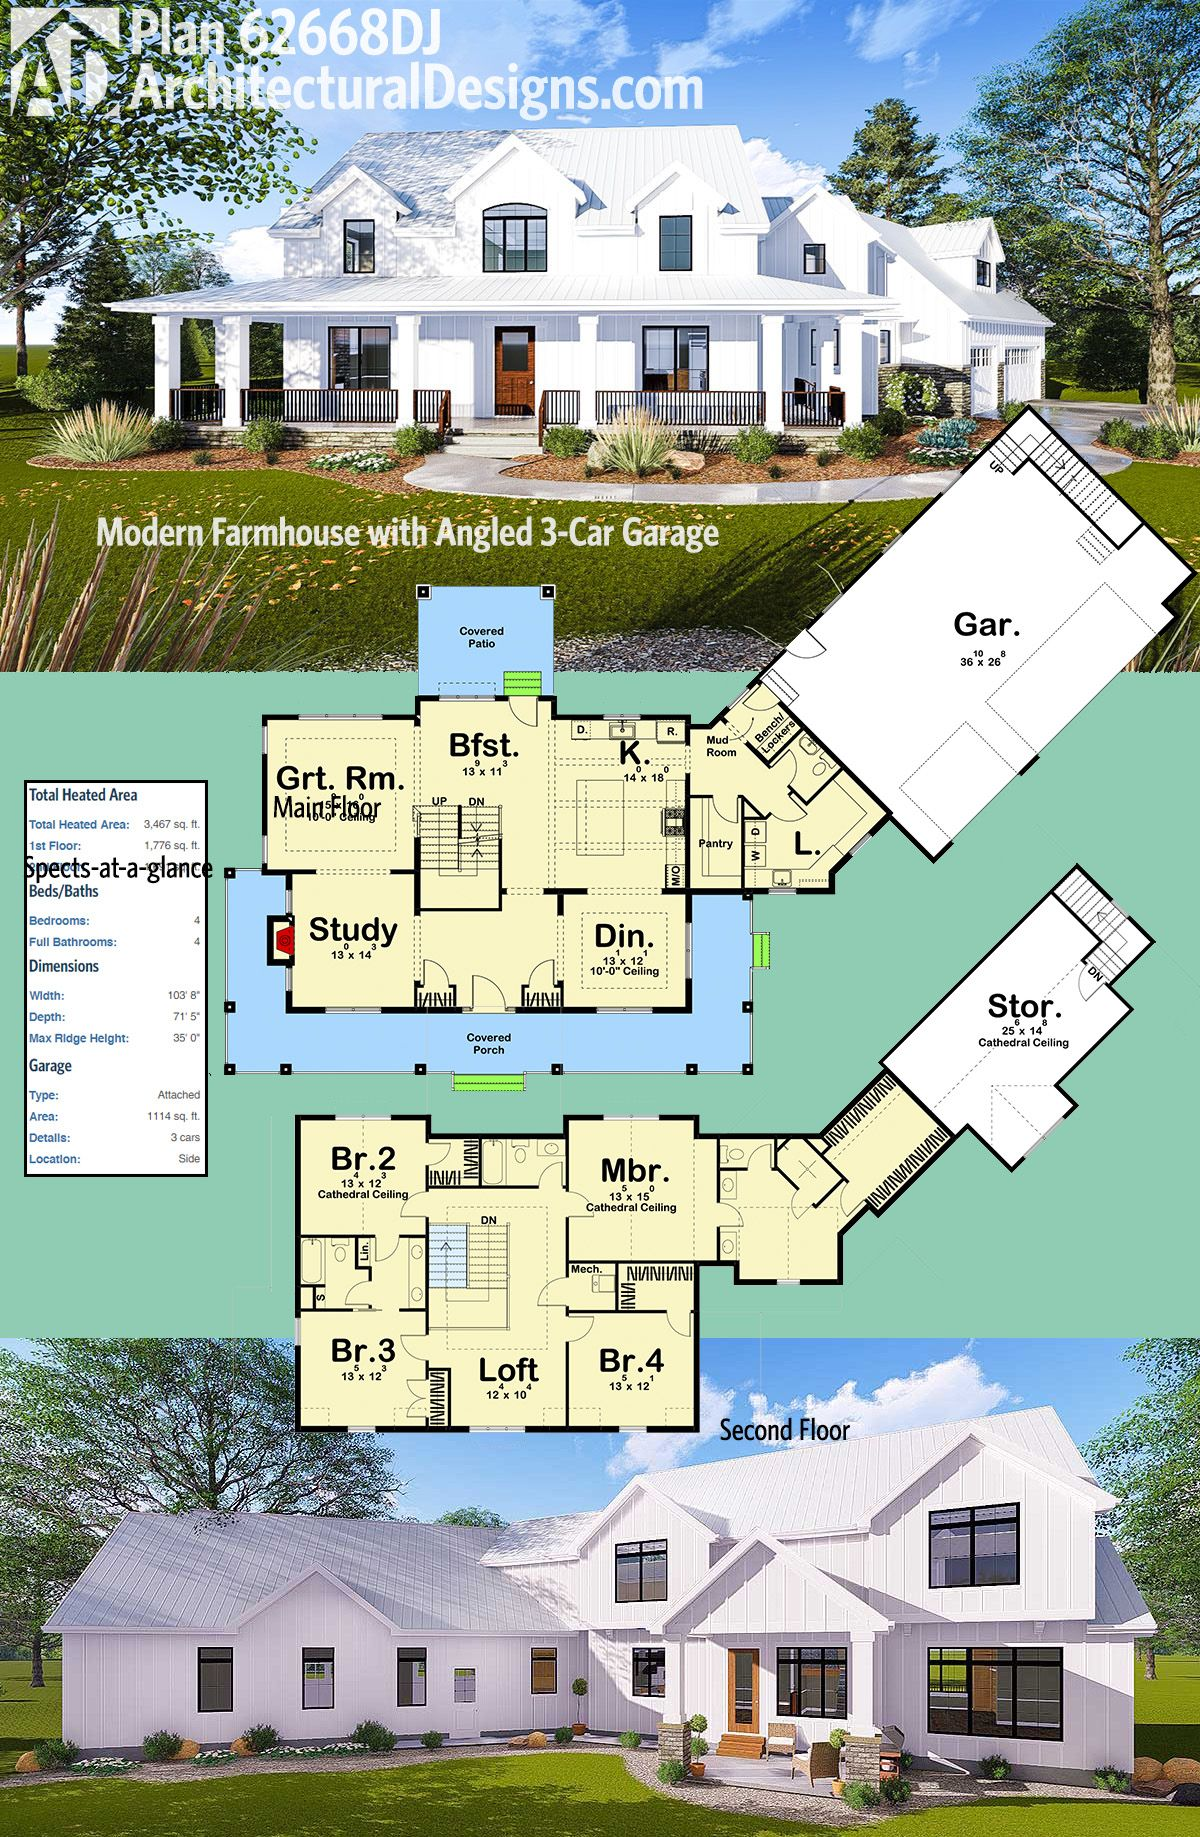 Plan 62668DJ: Modern Farmhouse with Angled 3-Car Garage ...